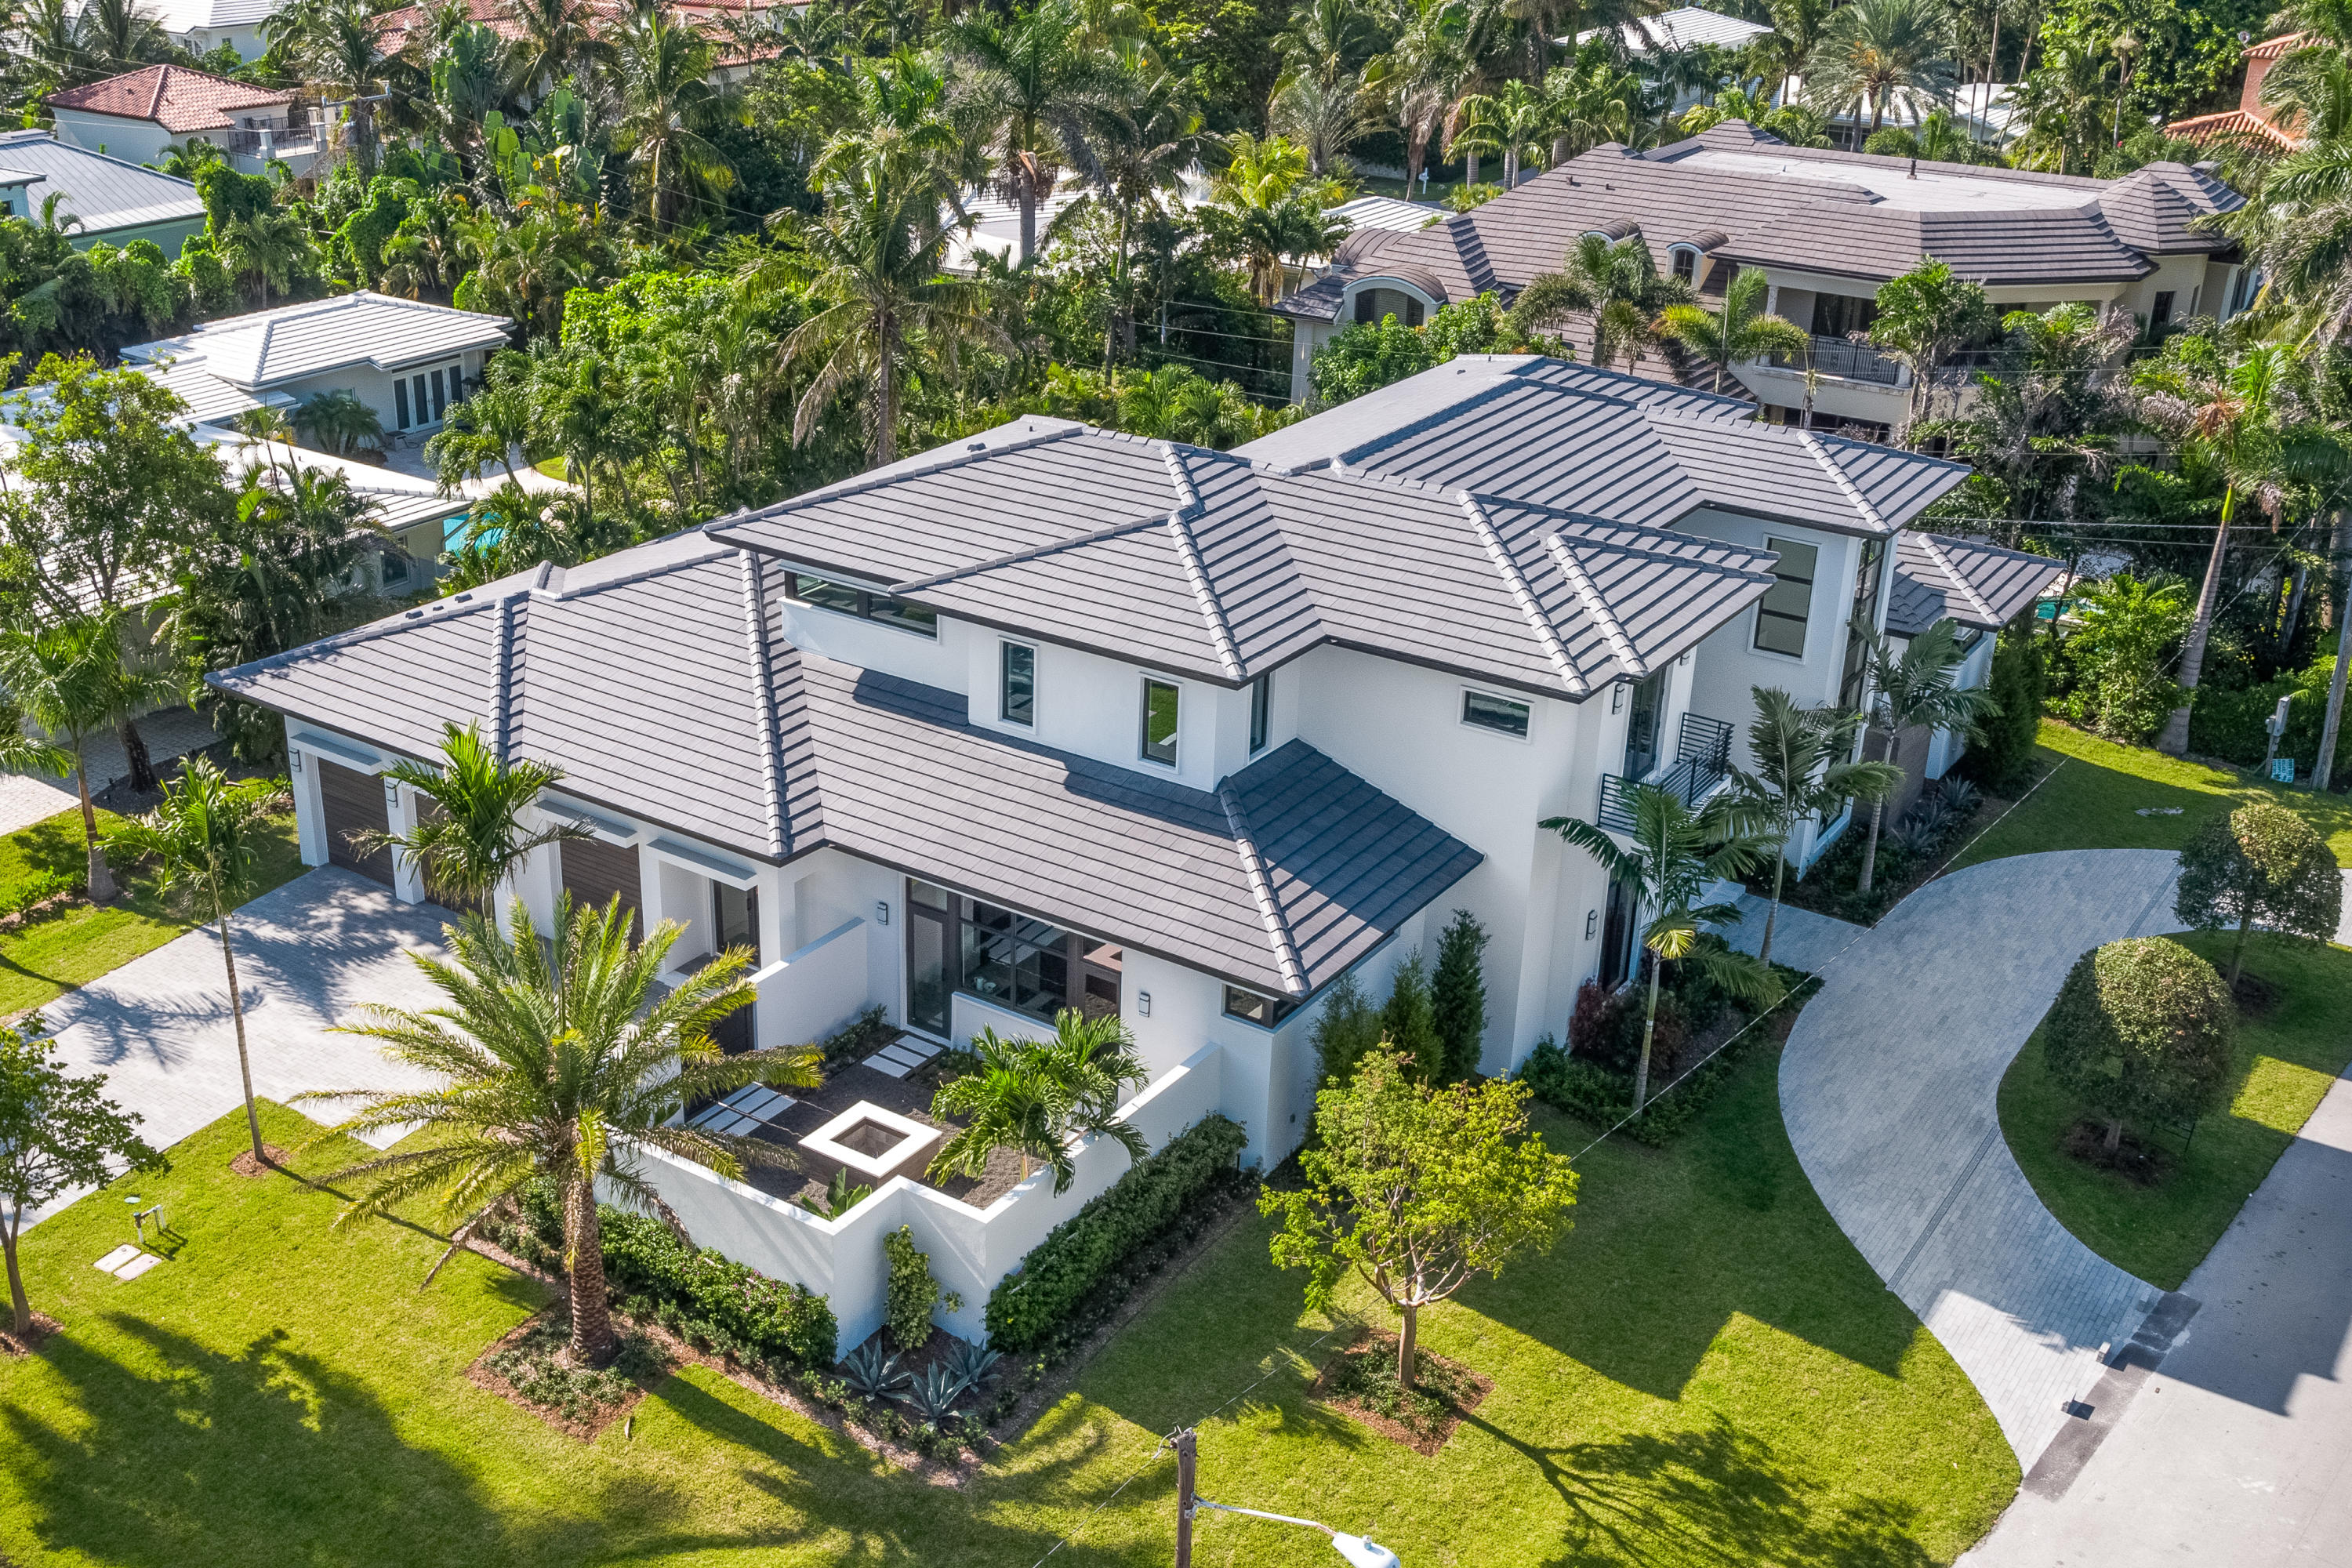 Home for sale in Seagate Delray Beach Florida